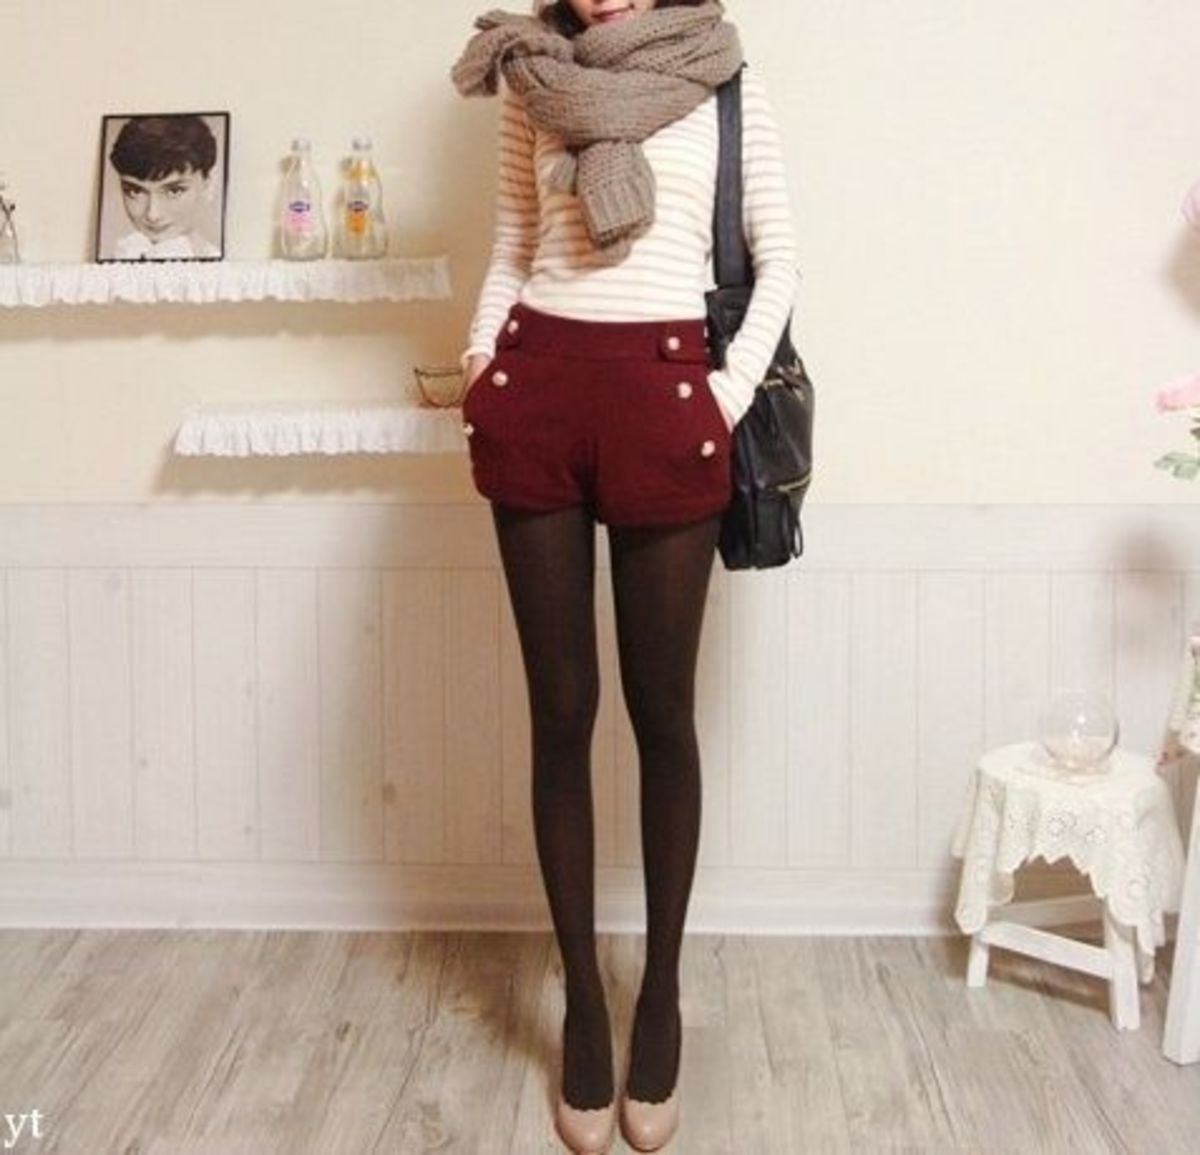 Shorts, Tights, Opaque Tights, Maroon, Gold, Gold Buttons, Nude Pumps, Big Scarf, Stripes, Vintage, Fashion, Fashion Forward, Fall, Winter